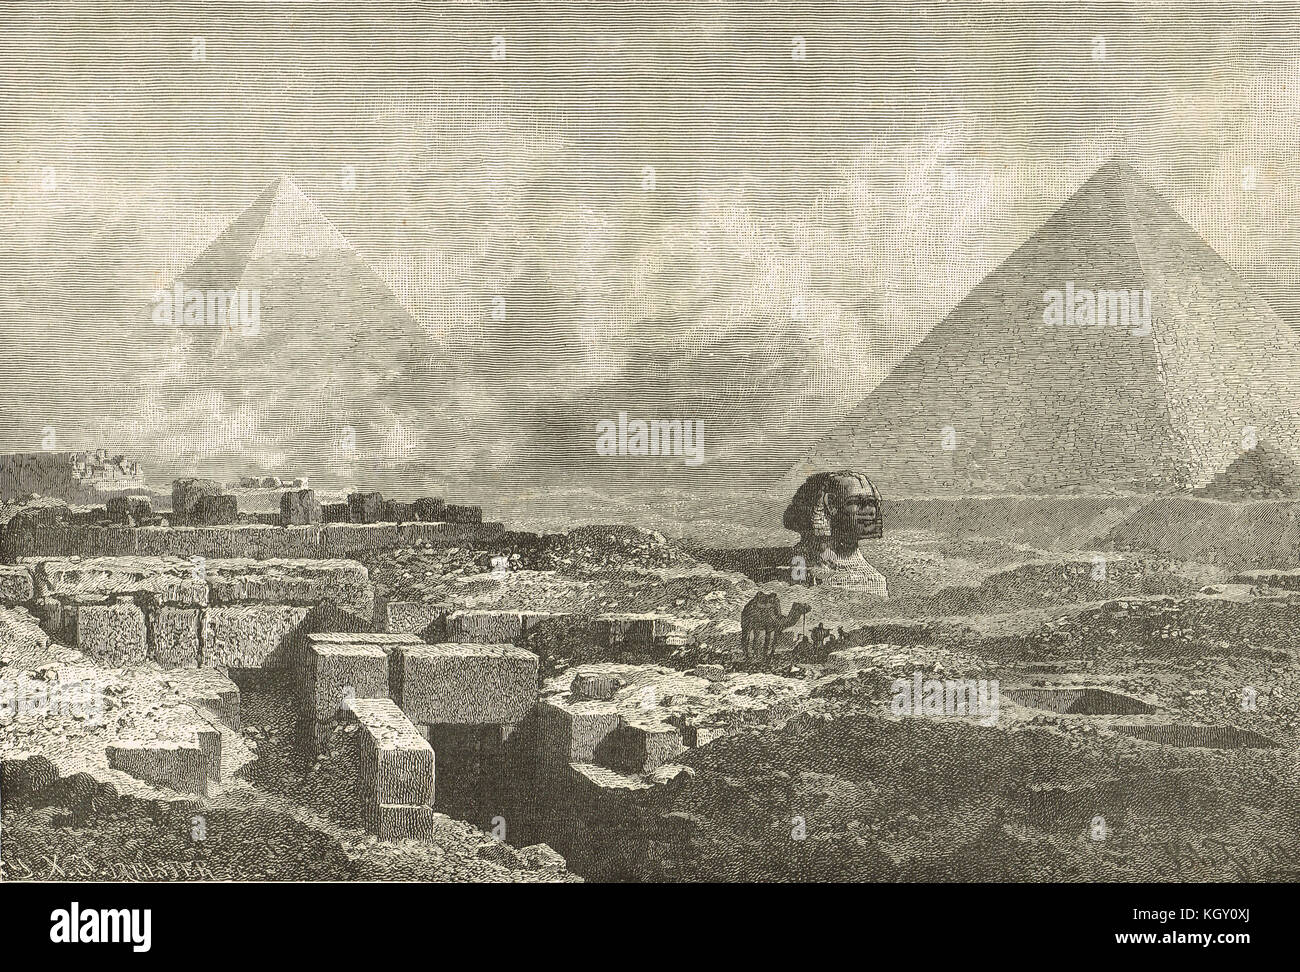 The Great Sphinx of Giza and the Pyramids, Egypt, 19th century view - Stock Image